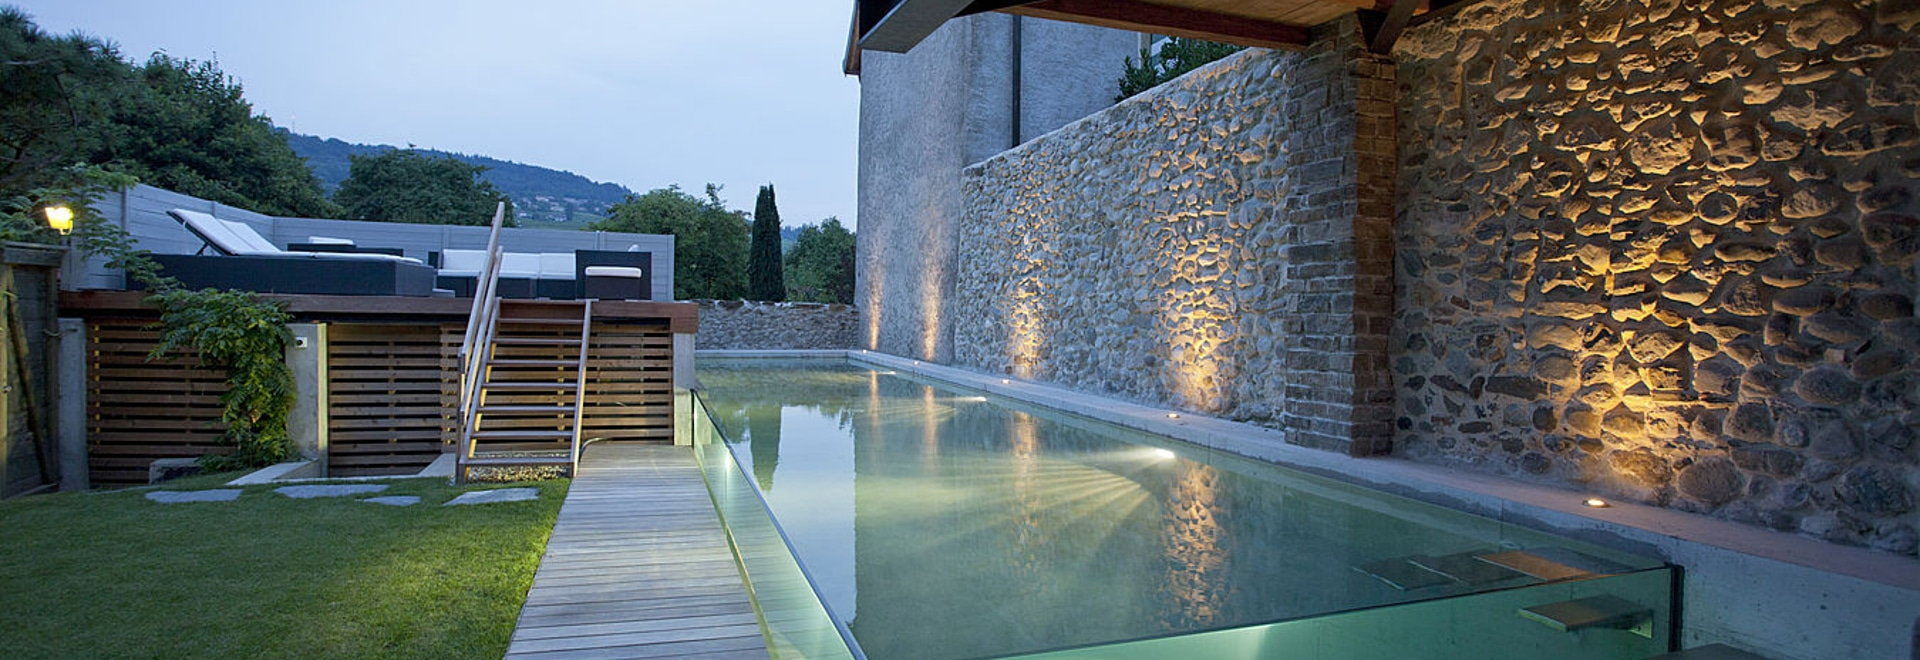 The Excelsior swimming pool with glass walls by Carré Bleu ...